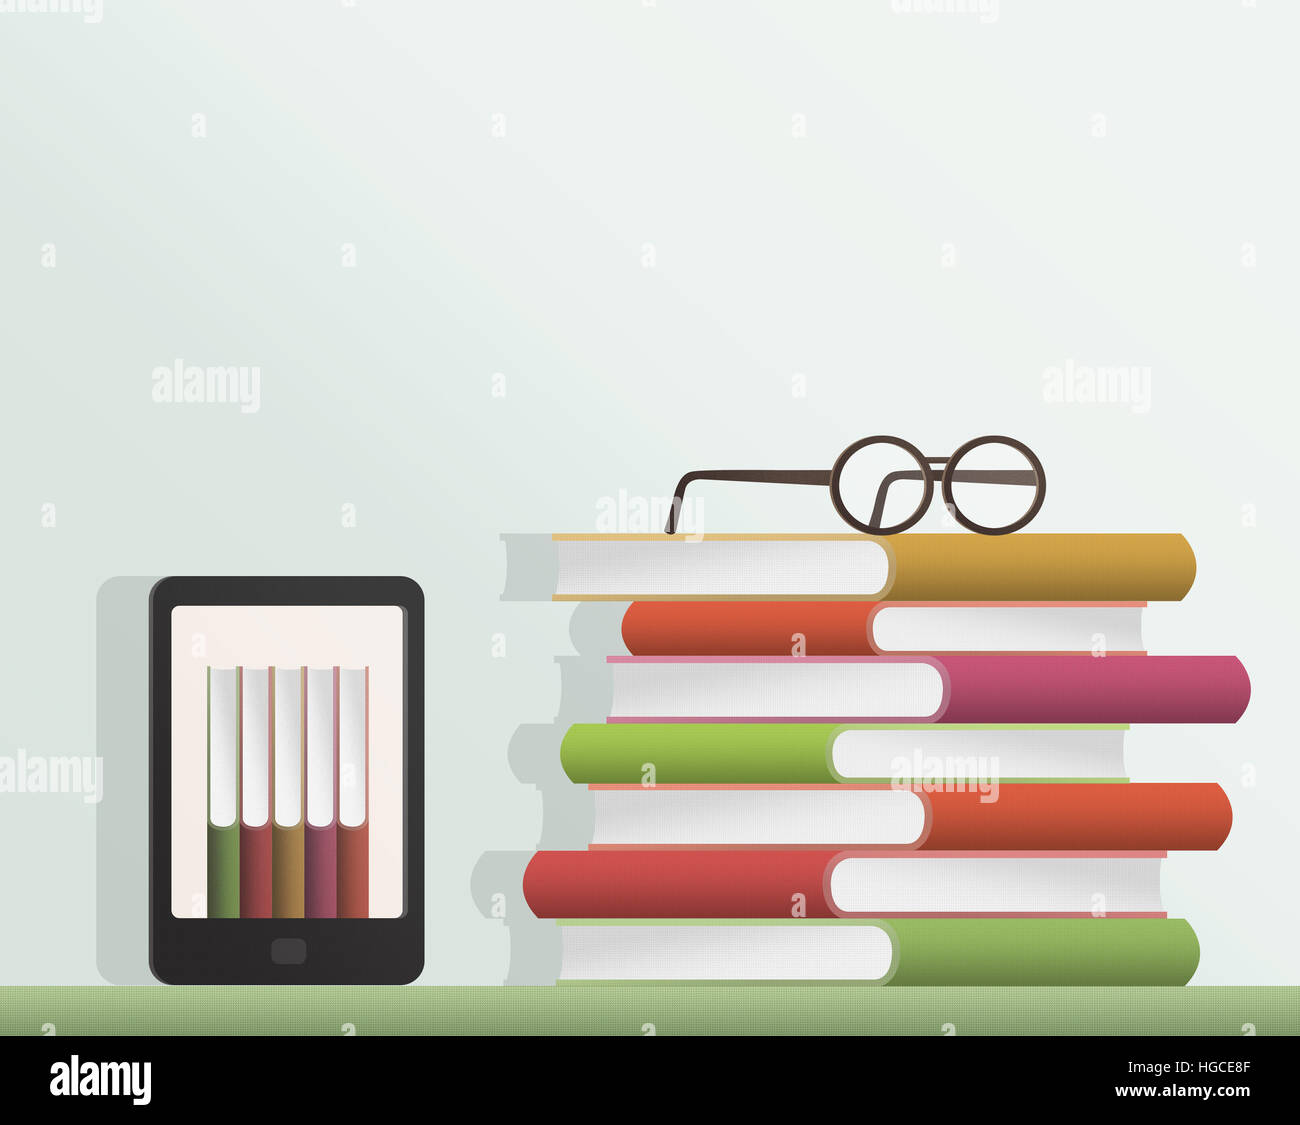 E-book, books and glasses illustration - Stock Image